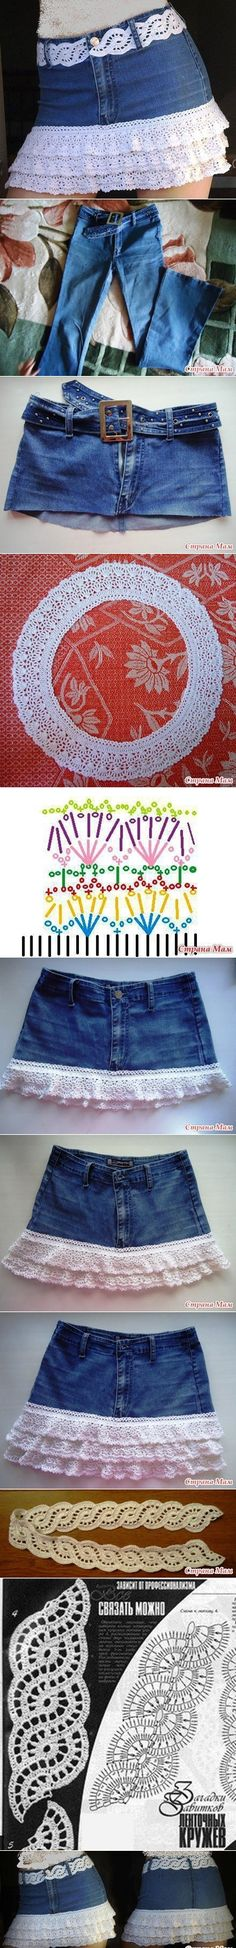 crochet fringed jean skirt tutorial